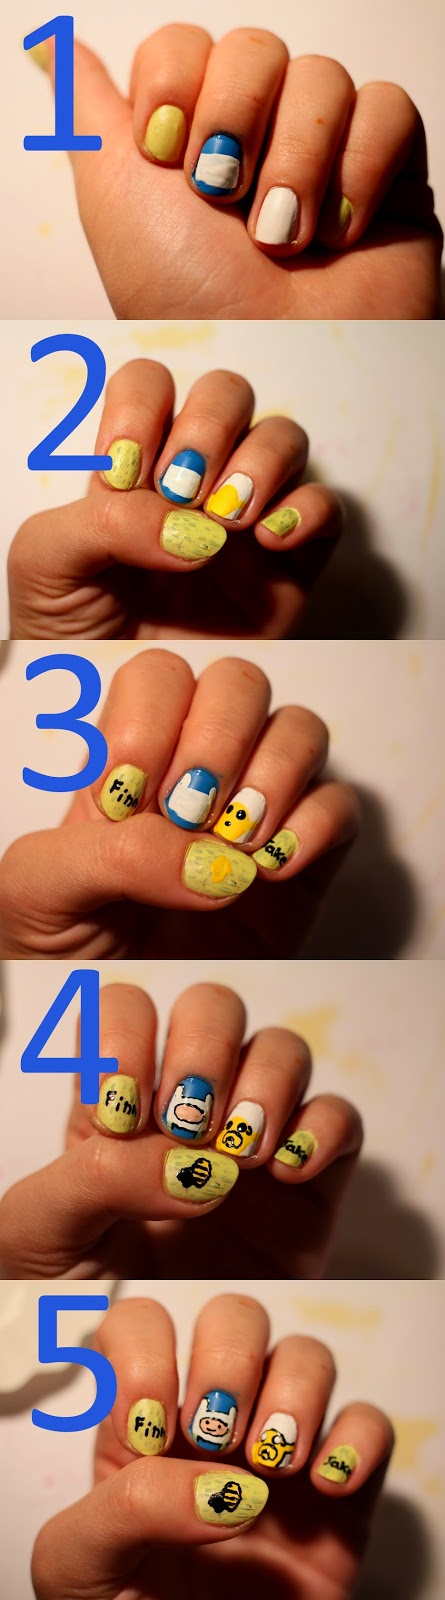 diy, adventure time, nail art, step-by-step